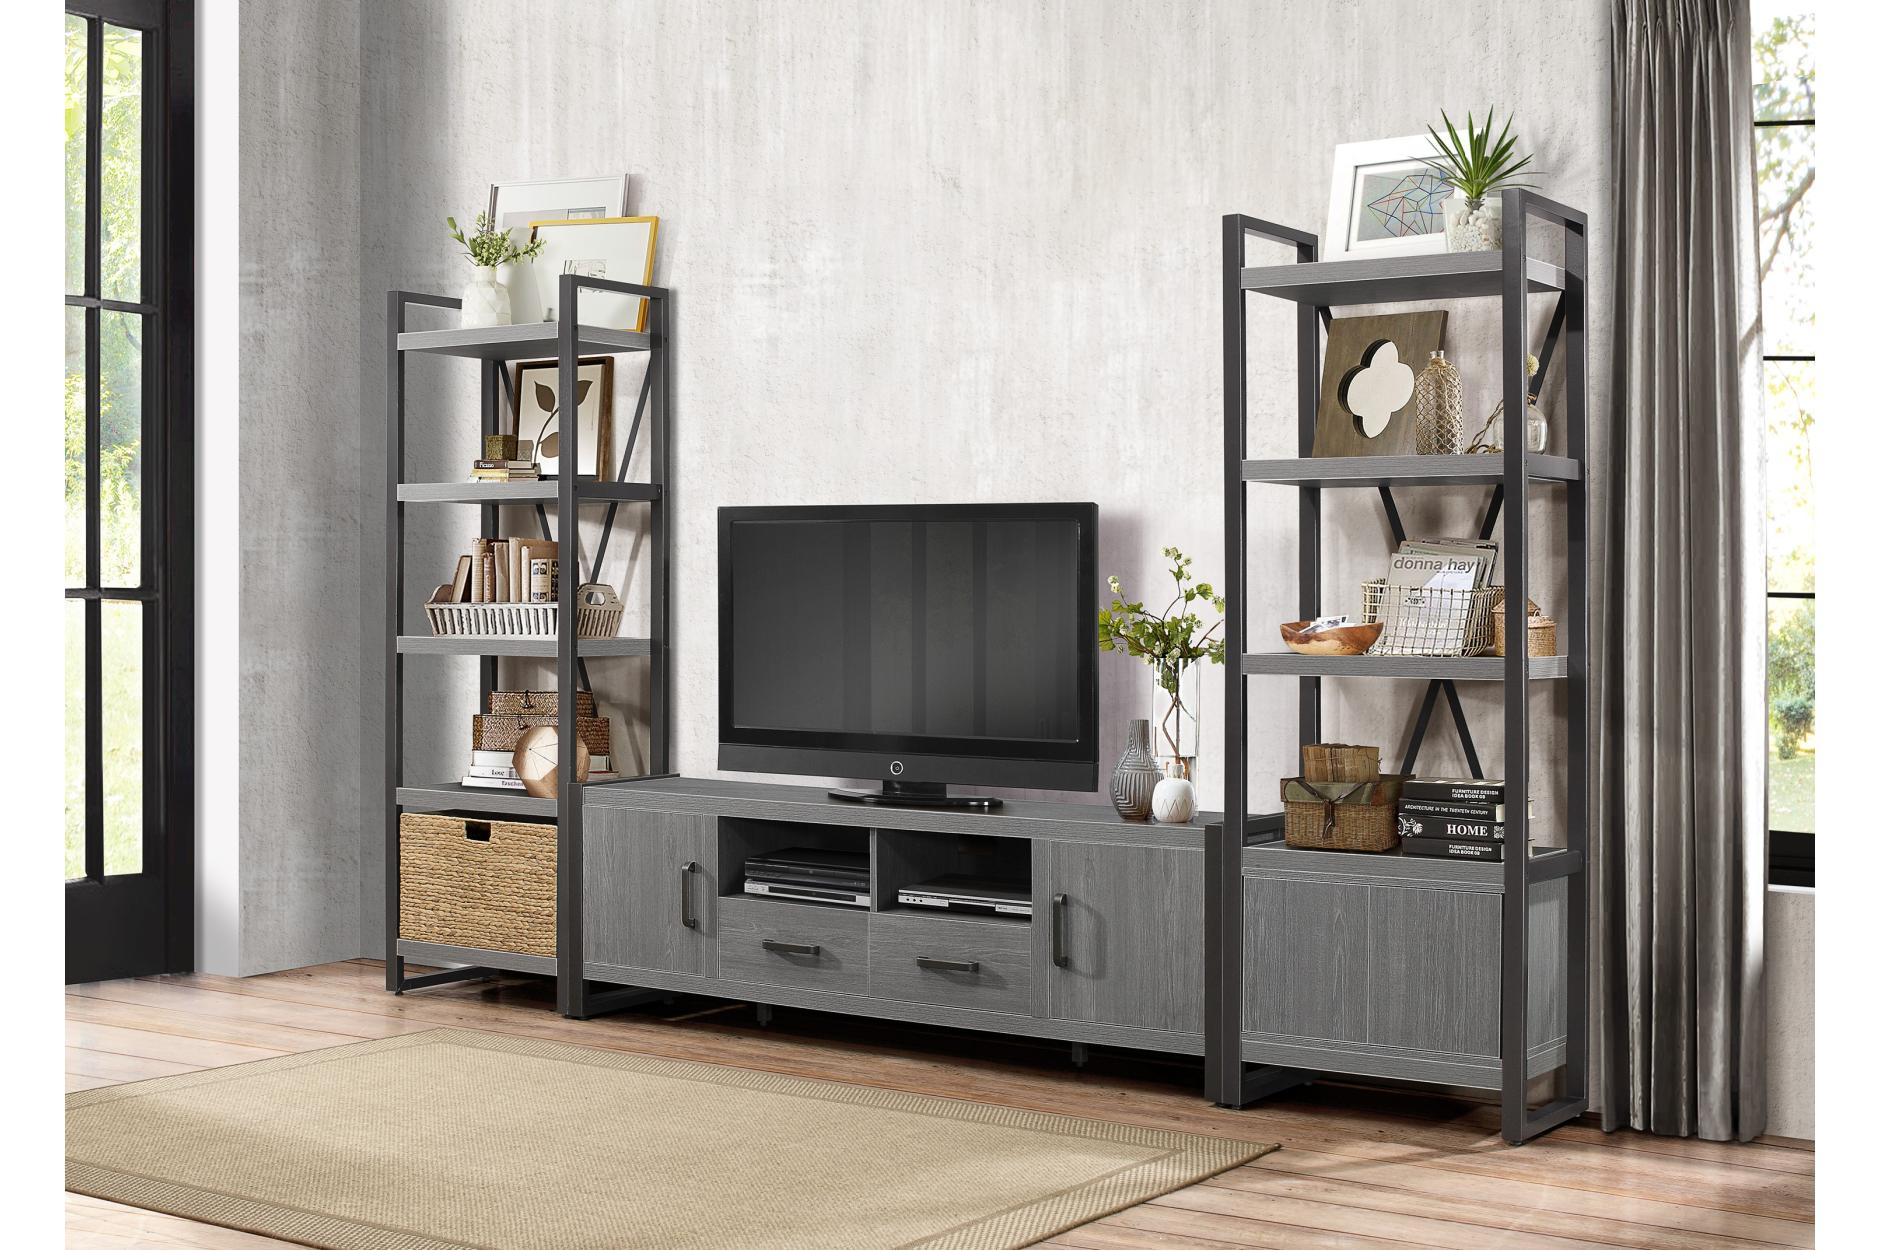 76 TV STAND